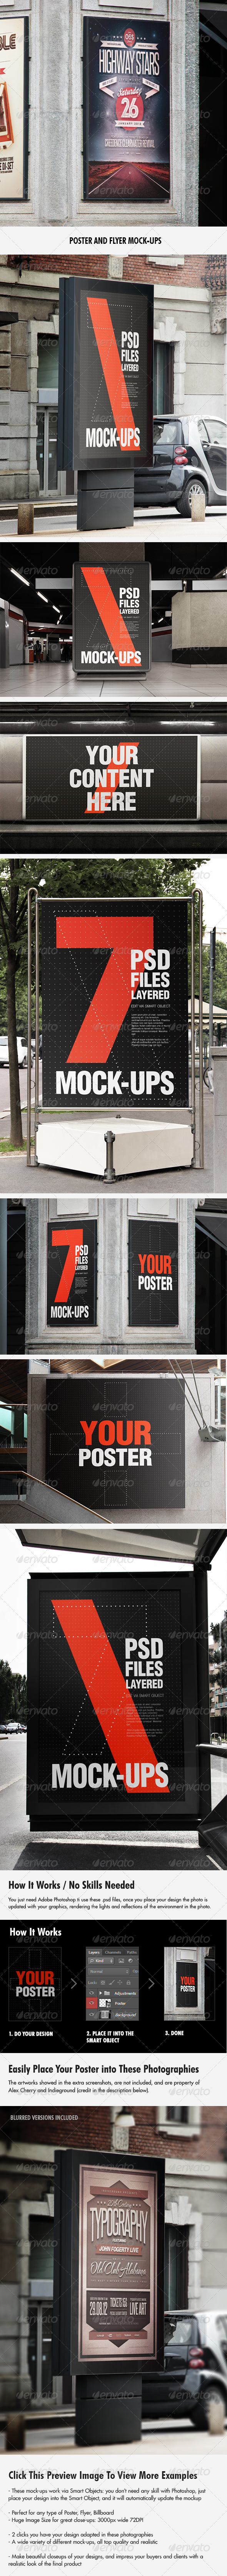 Flyer and Poster Urban Mock-ups - Set Pack - Posters Print